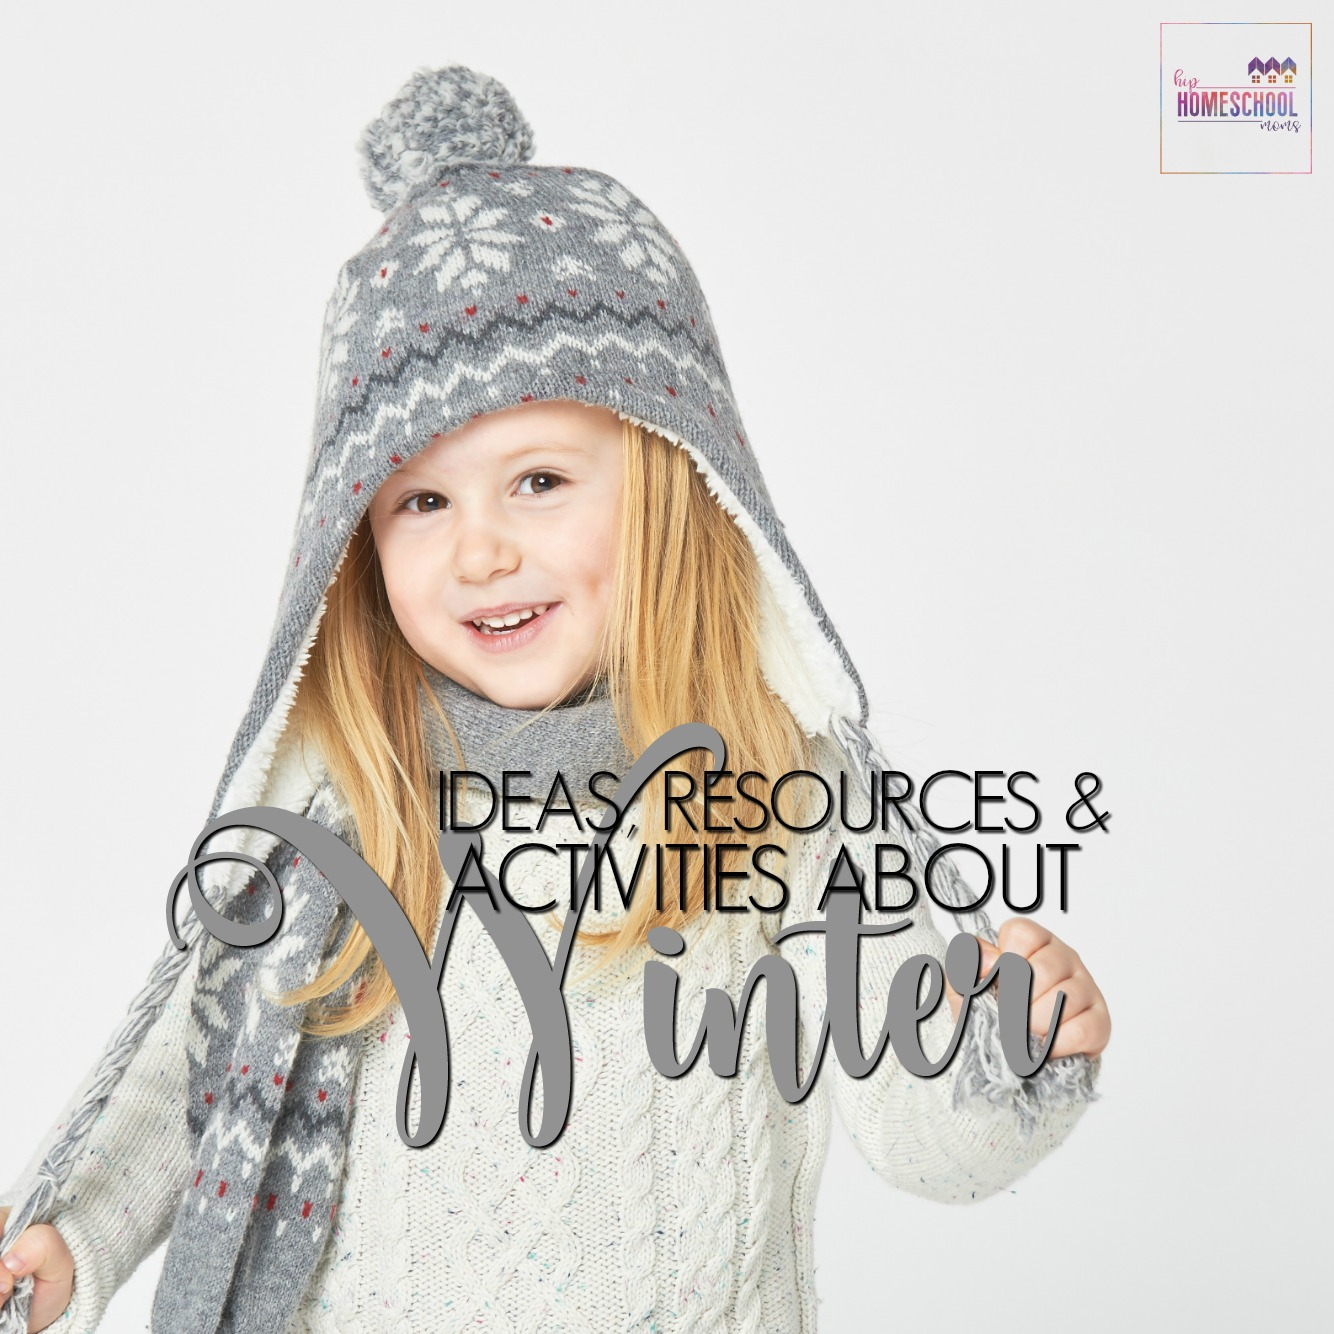 Great free resources for fun activities for winter!